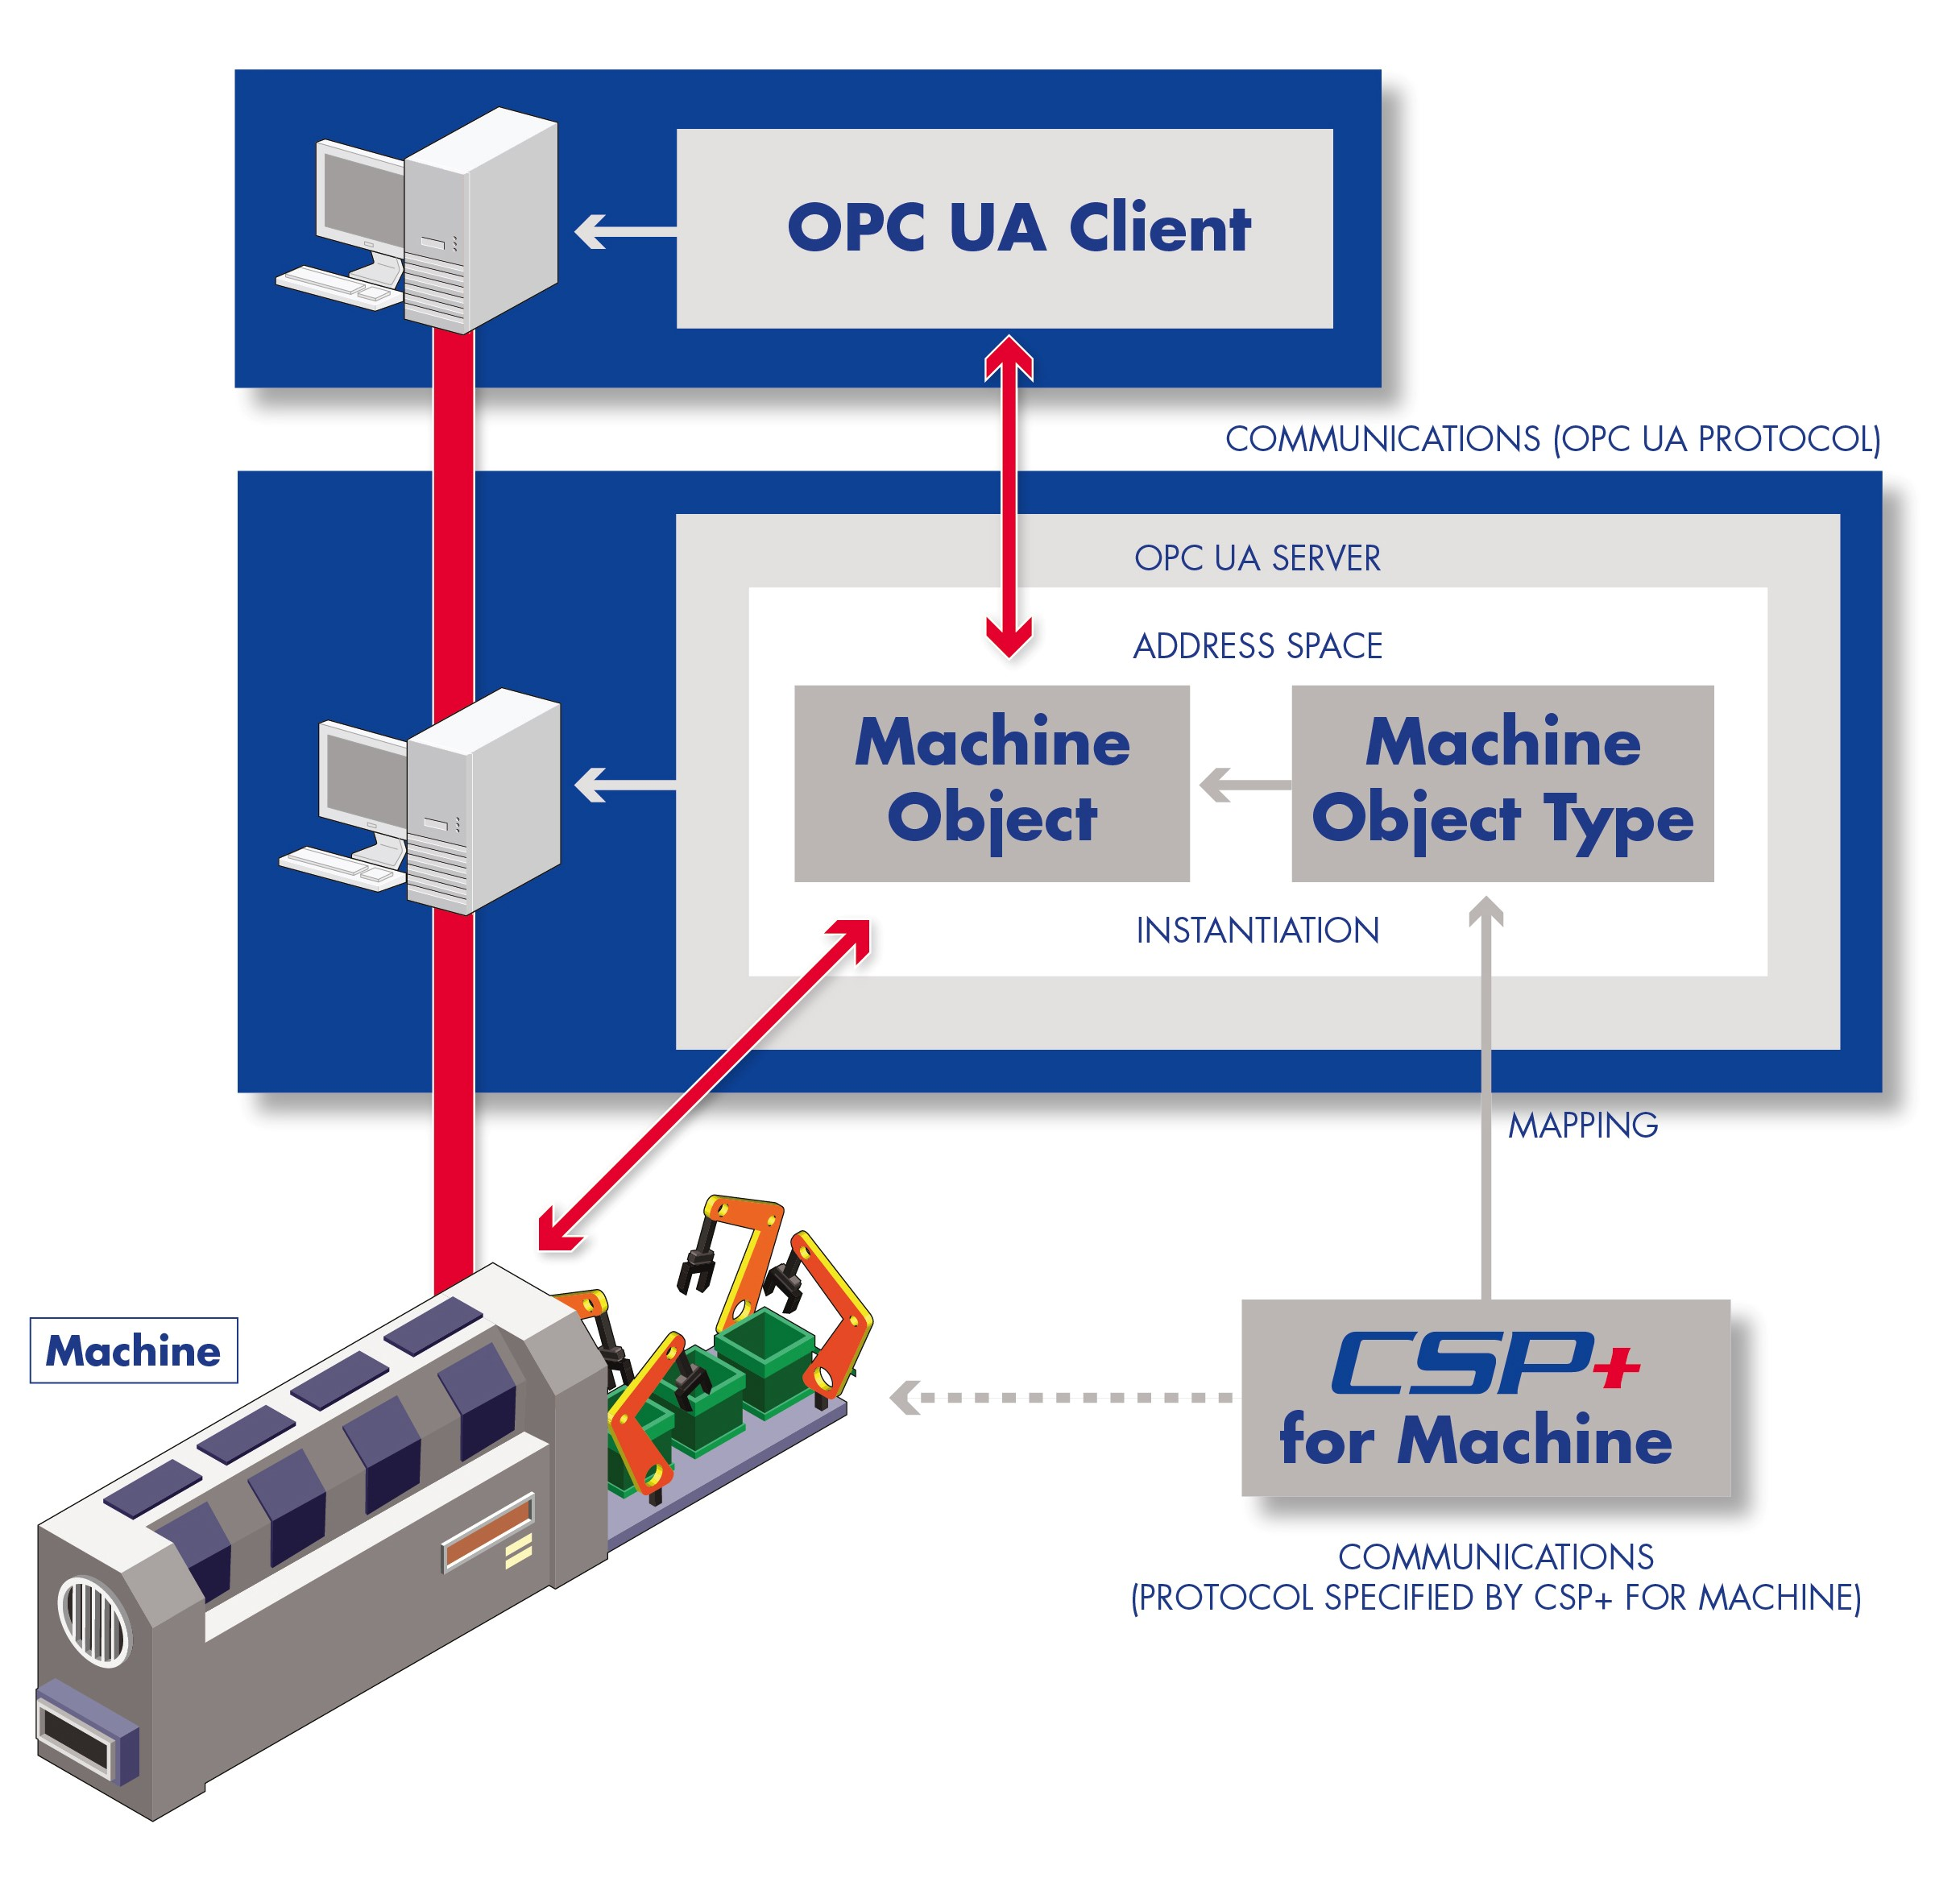 """New companion specification integrates CLPA's """"CSP+ for Machine"""" into OPC UA technology"""